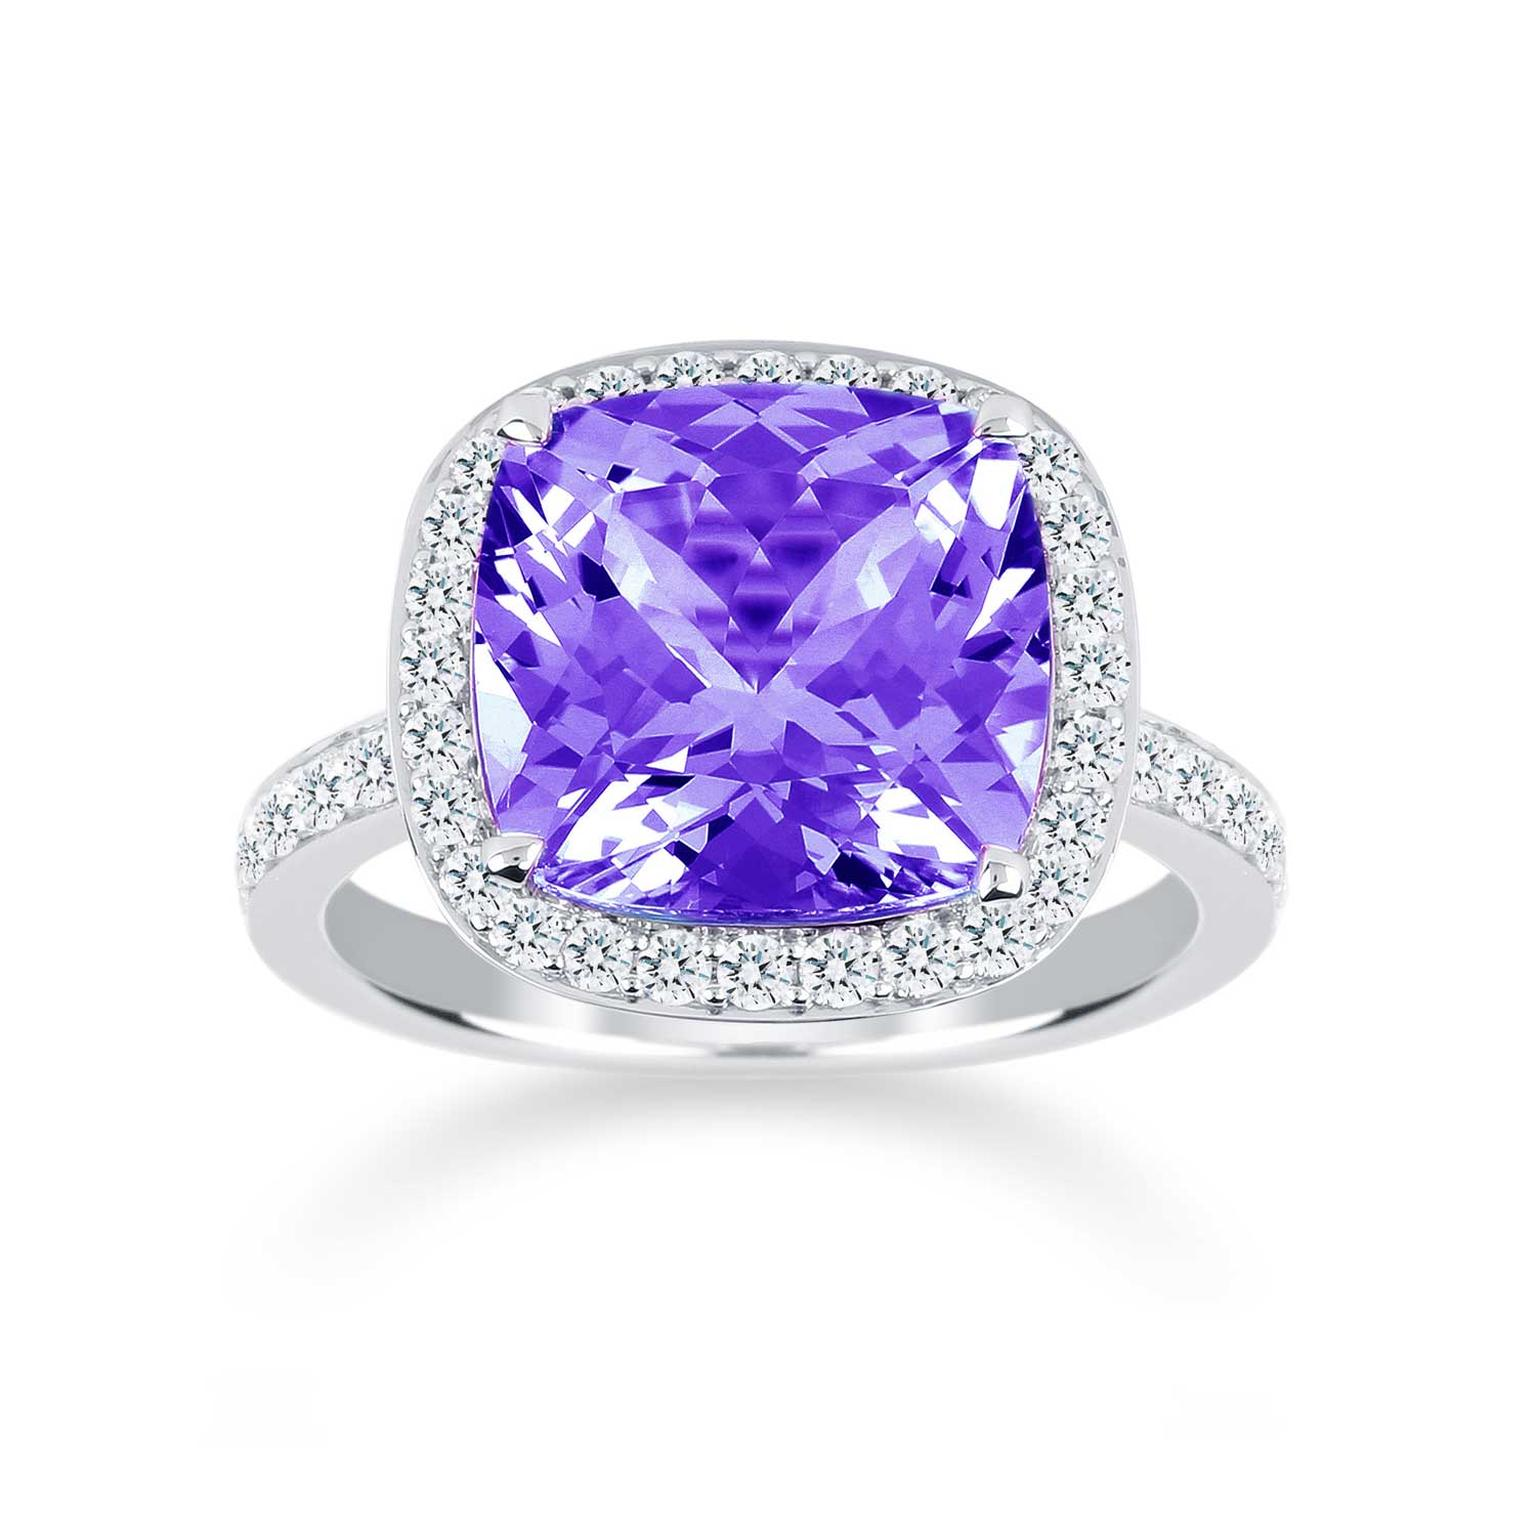 Mappin & Webb Prima amethyst engagement ring